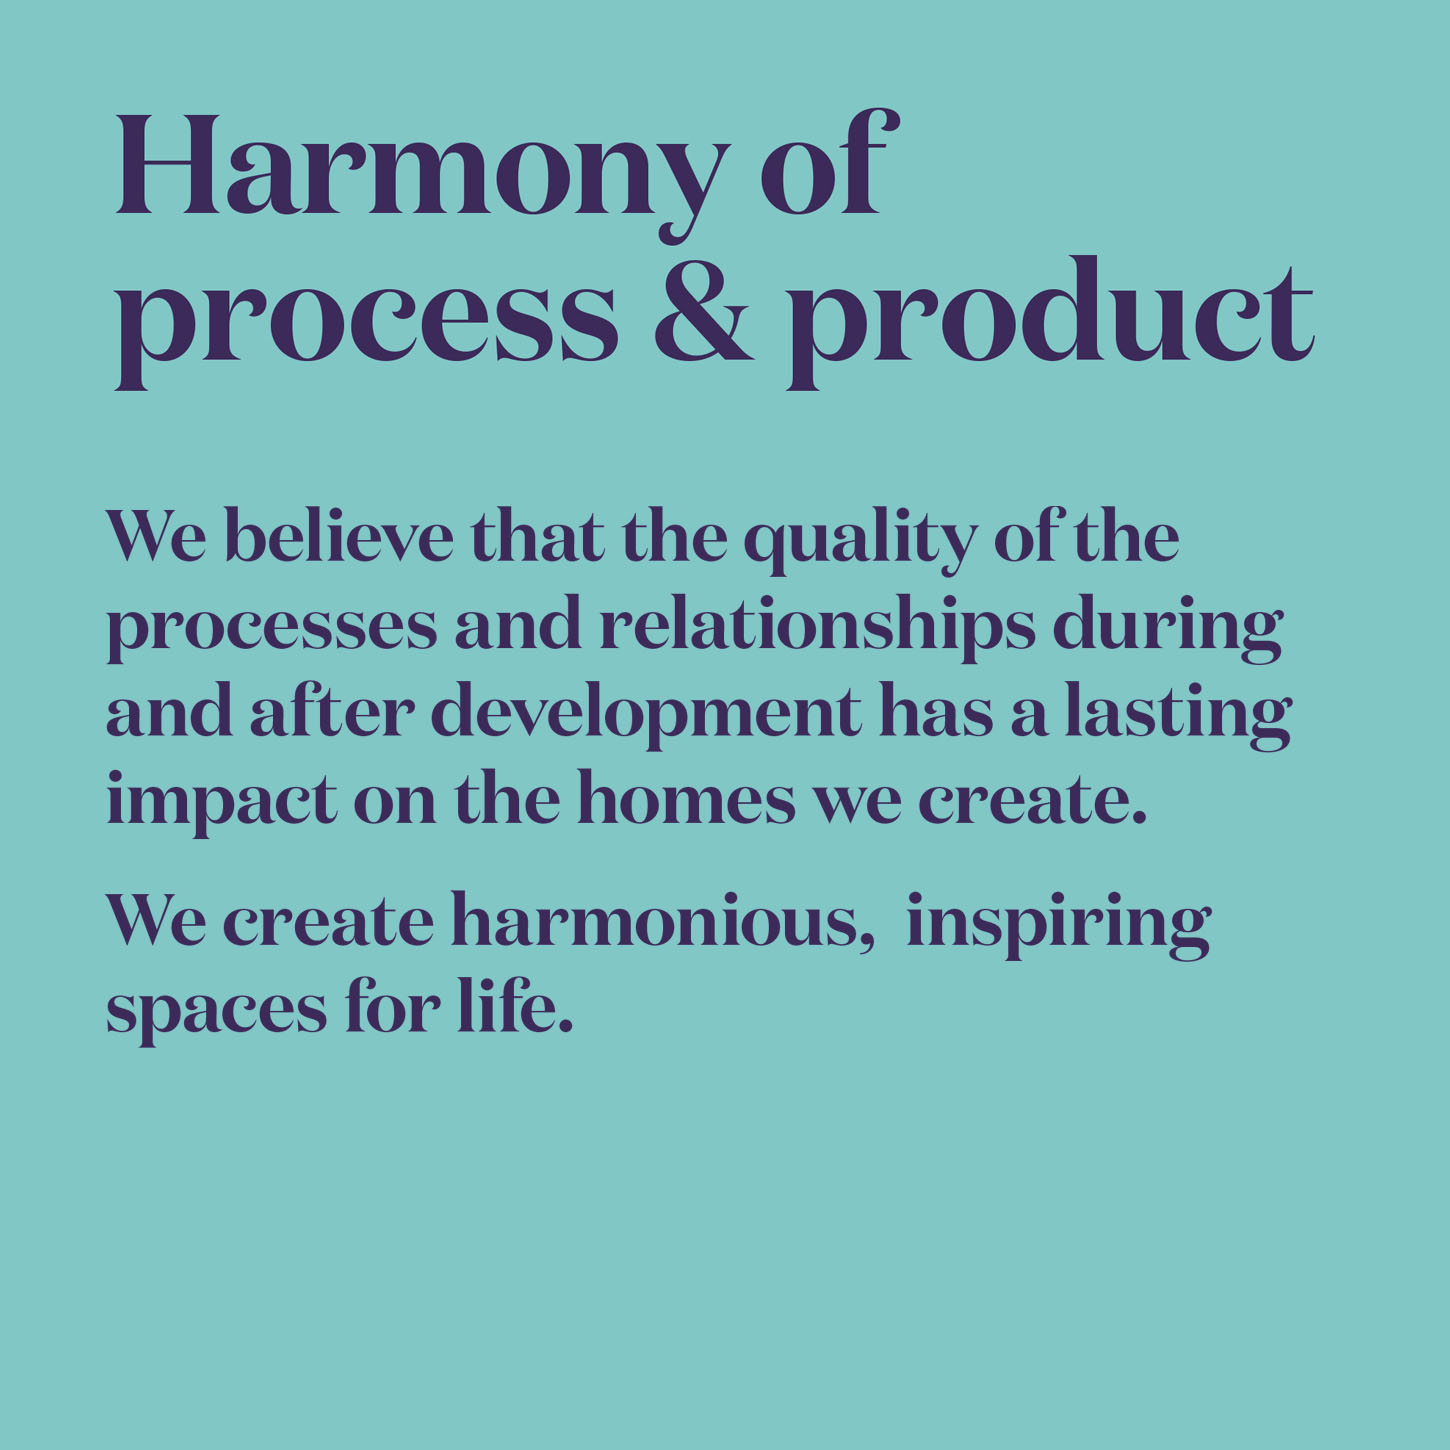 Harmony of process & product